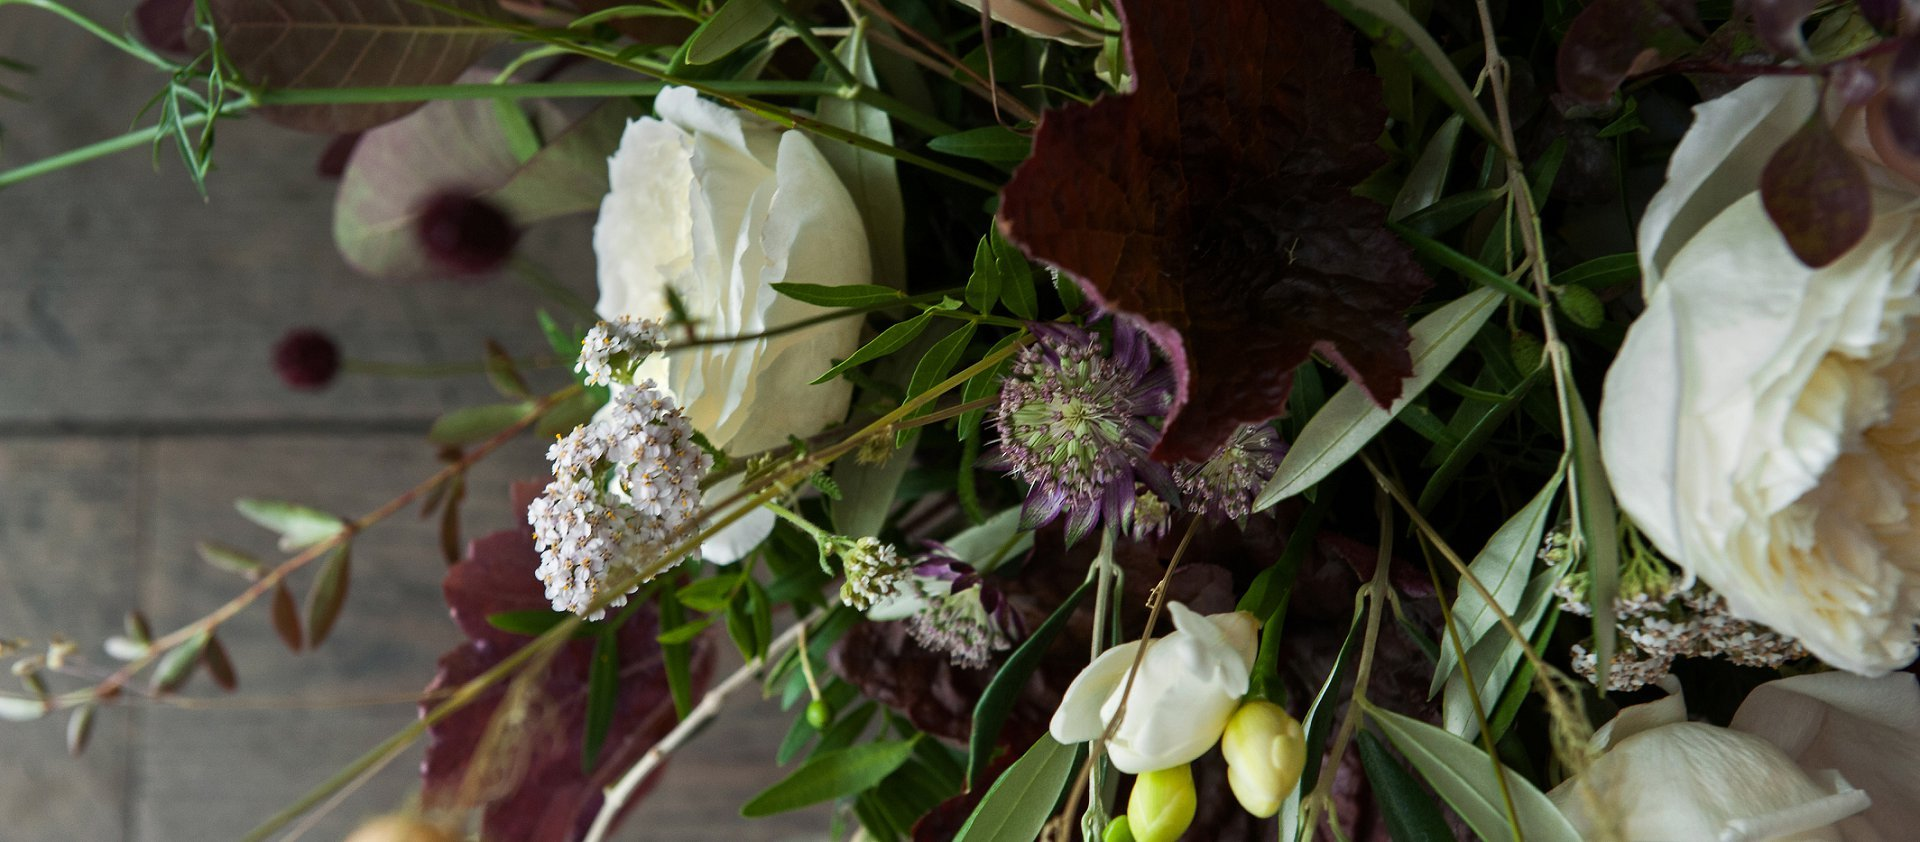 London Florist Bloomologie - an interview with owner Alison Billenness